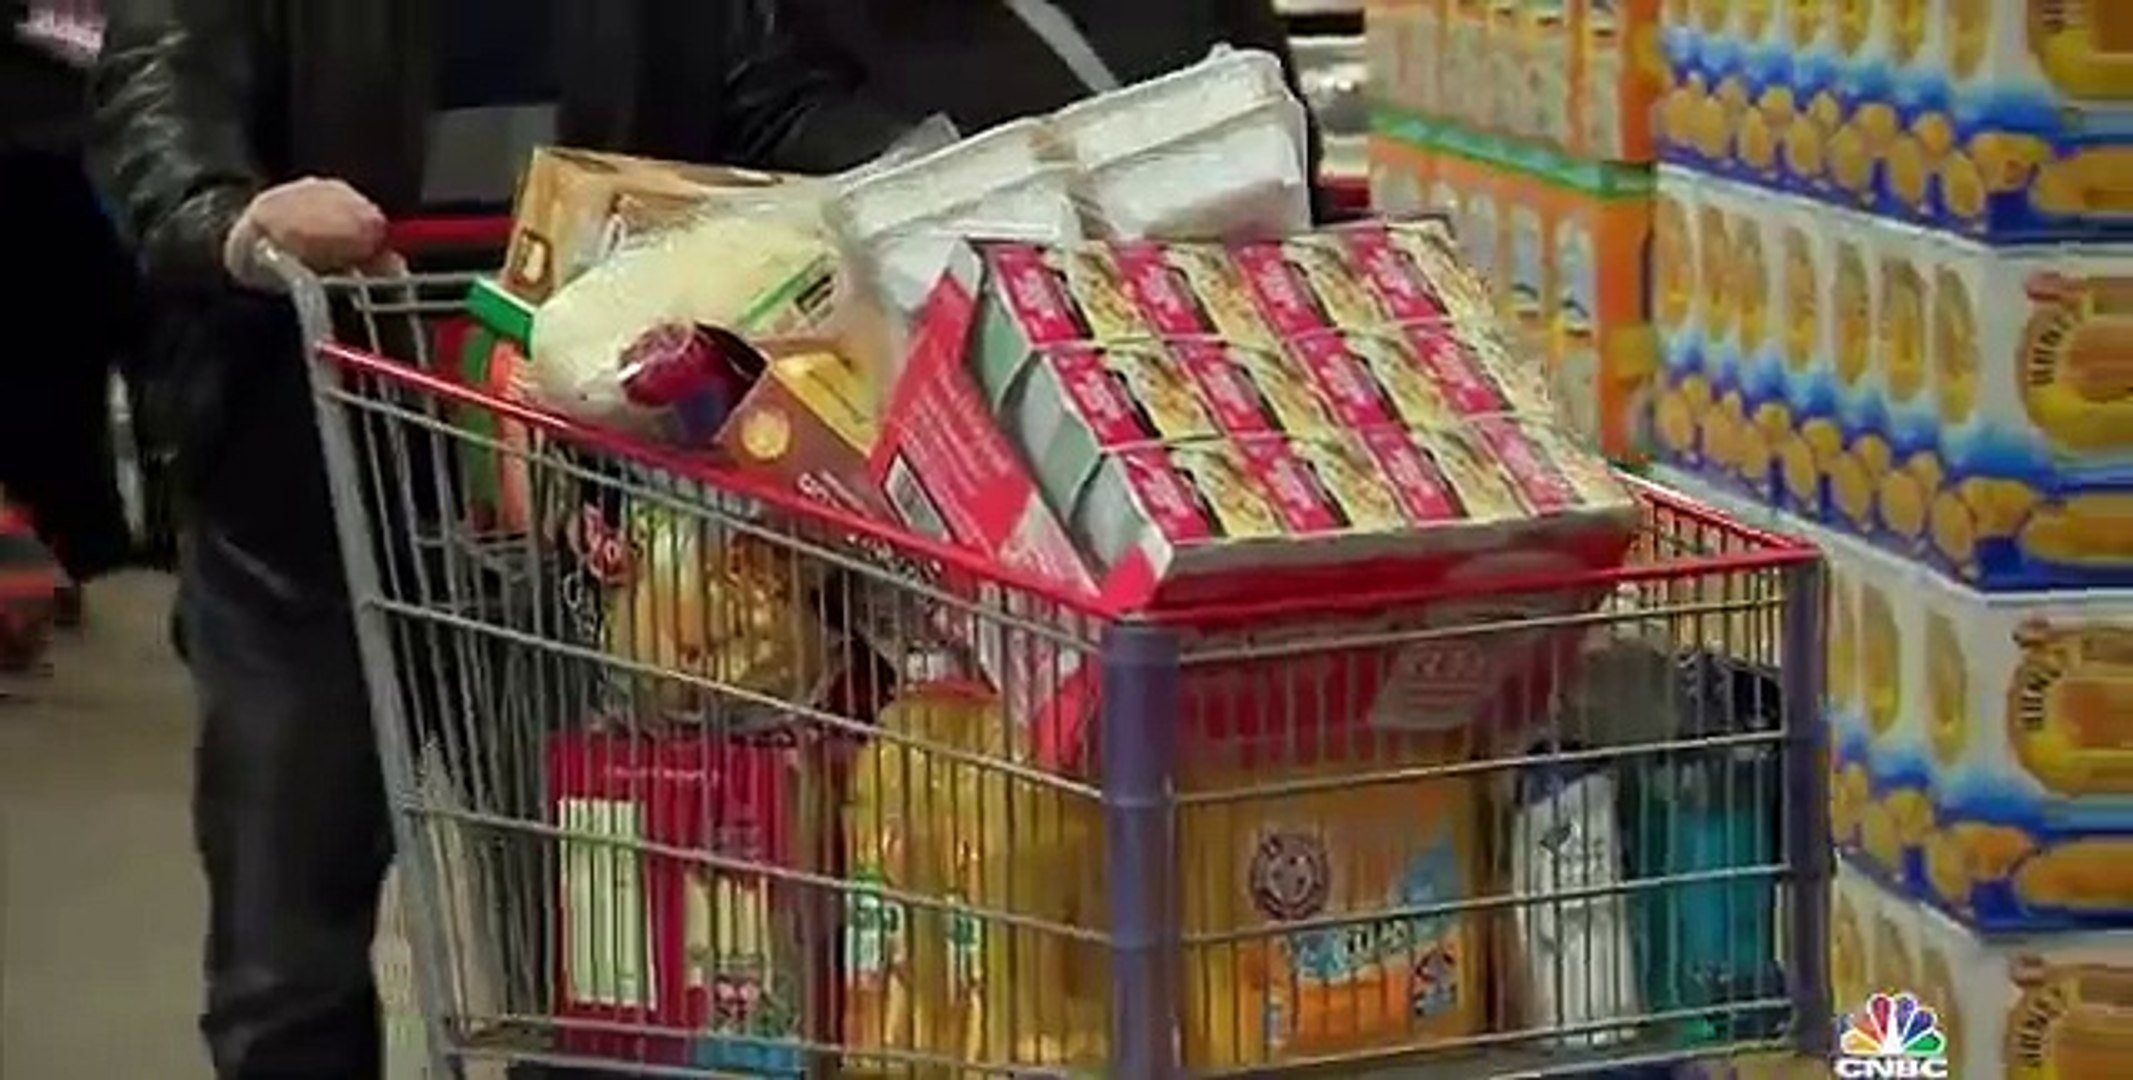 THE COSTCO CRAZE - INSIDE THE WAREHOUSE GIANT - CNBC Documentary - Finance Money Business (full docu